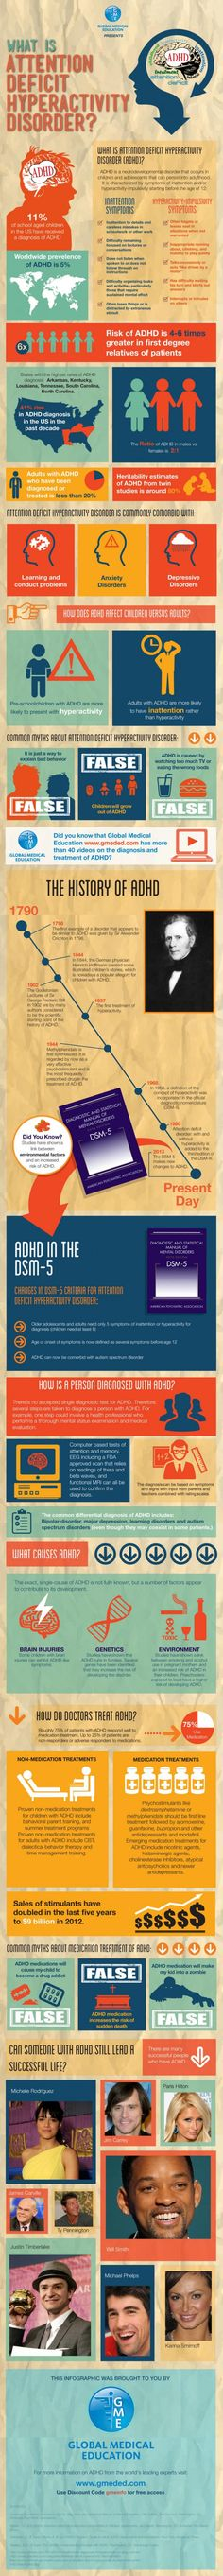 What Is ADHD? Infographic